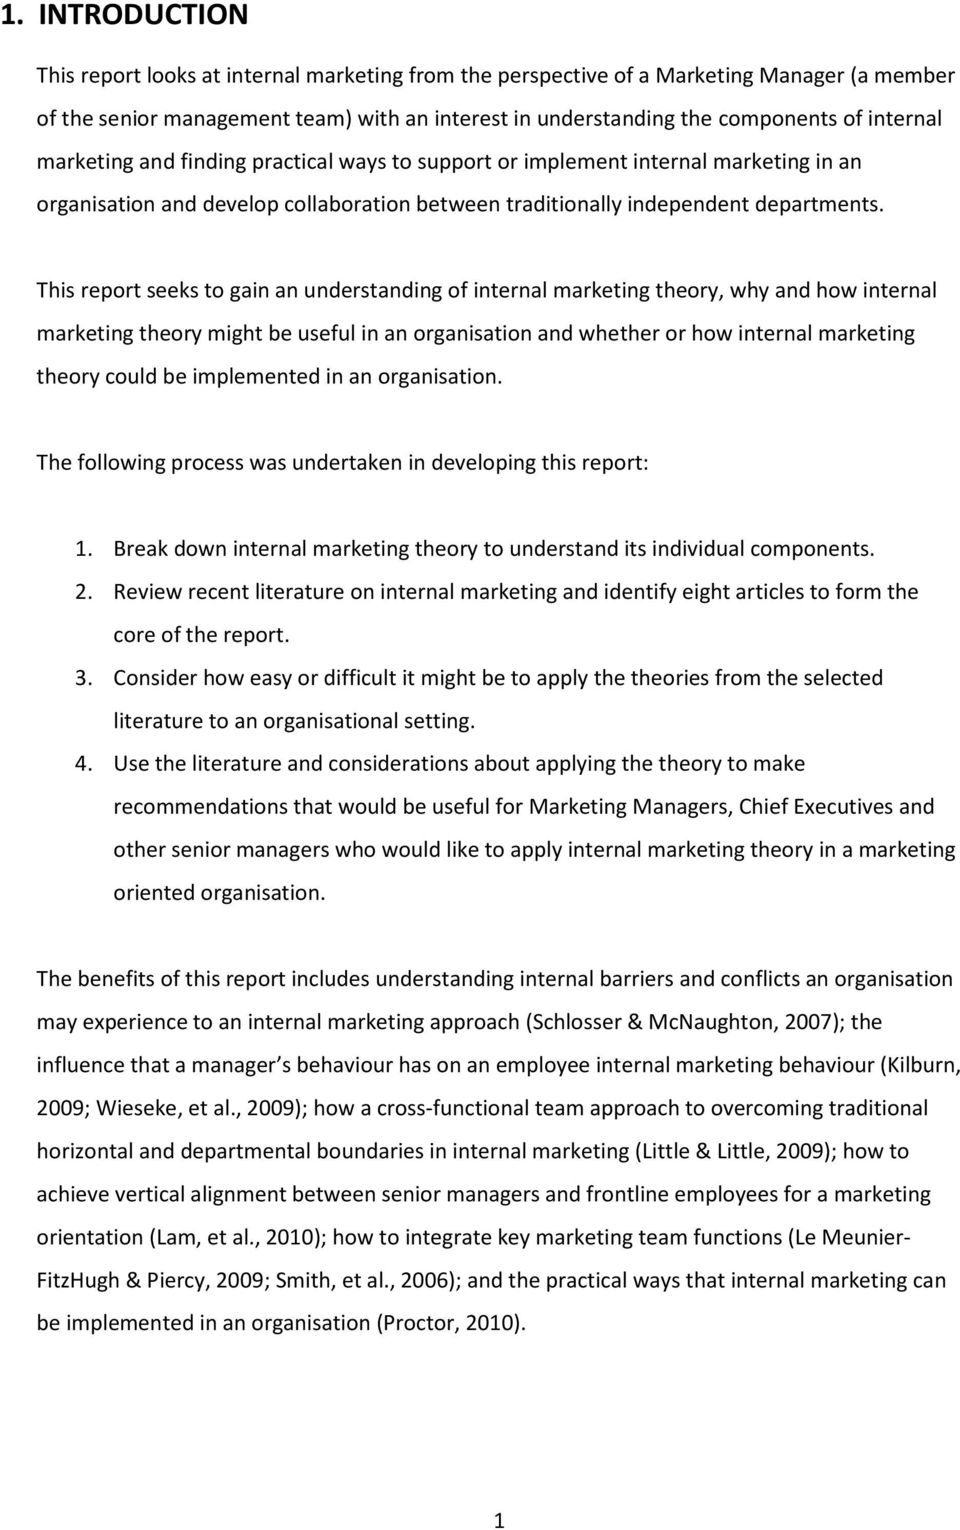 This report seeks to gain an understanding of internal marketing theory, why and how internal marketing theory might be useful in an organisation and whether or how internal marketing theory could be